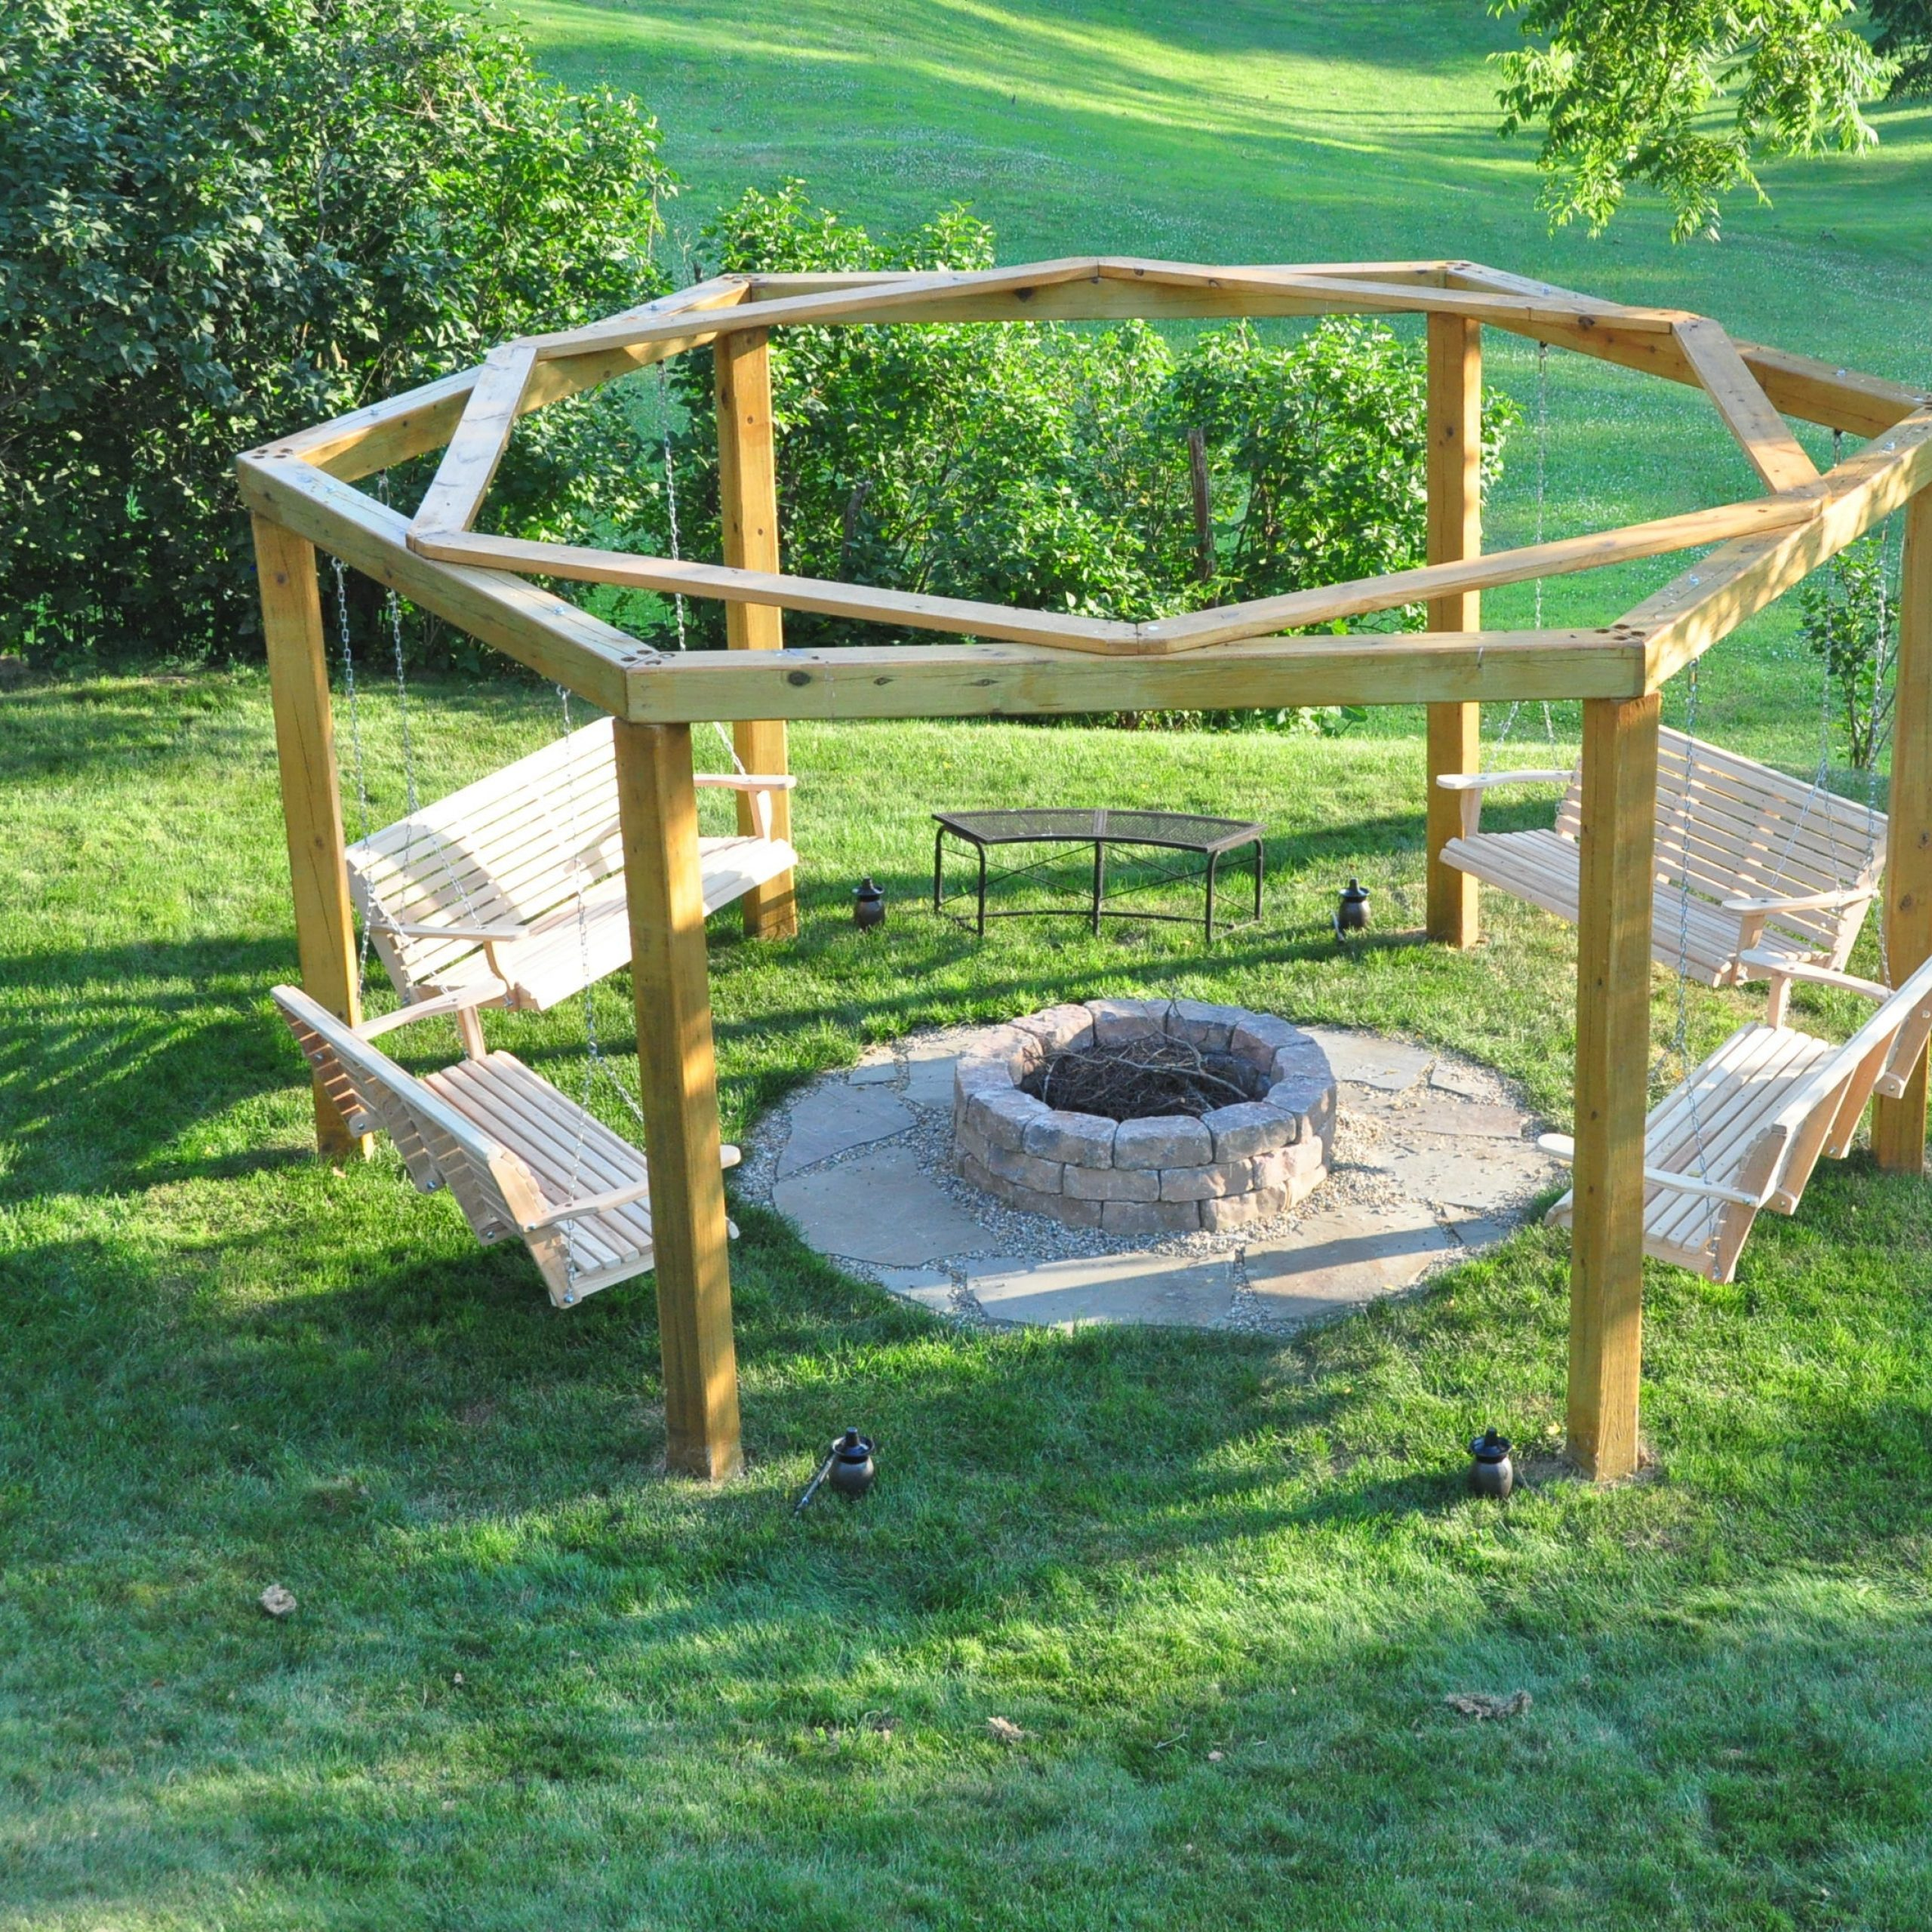 Porch Swing Fire Pit : 12 Steps (With Pictures) – Instructables For Patio Glider Hammock Porch Swings (View 13 of 25)